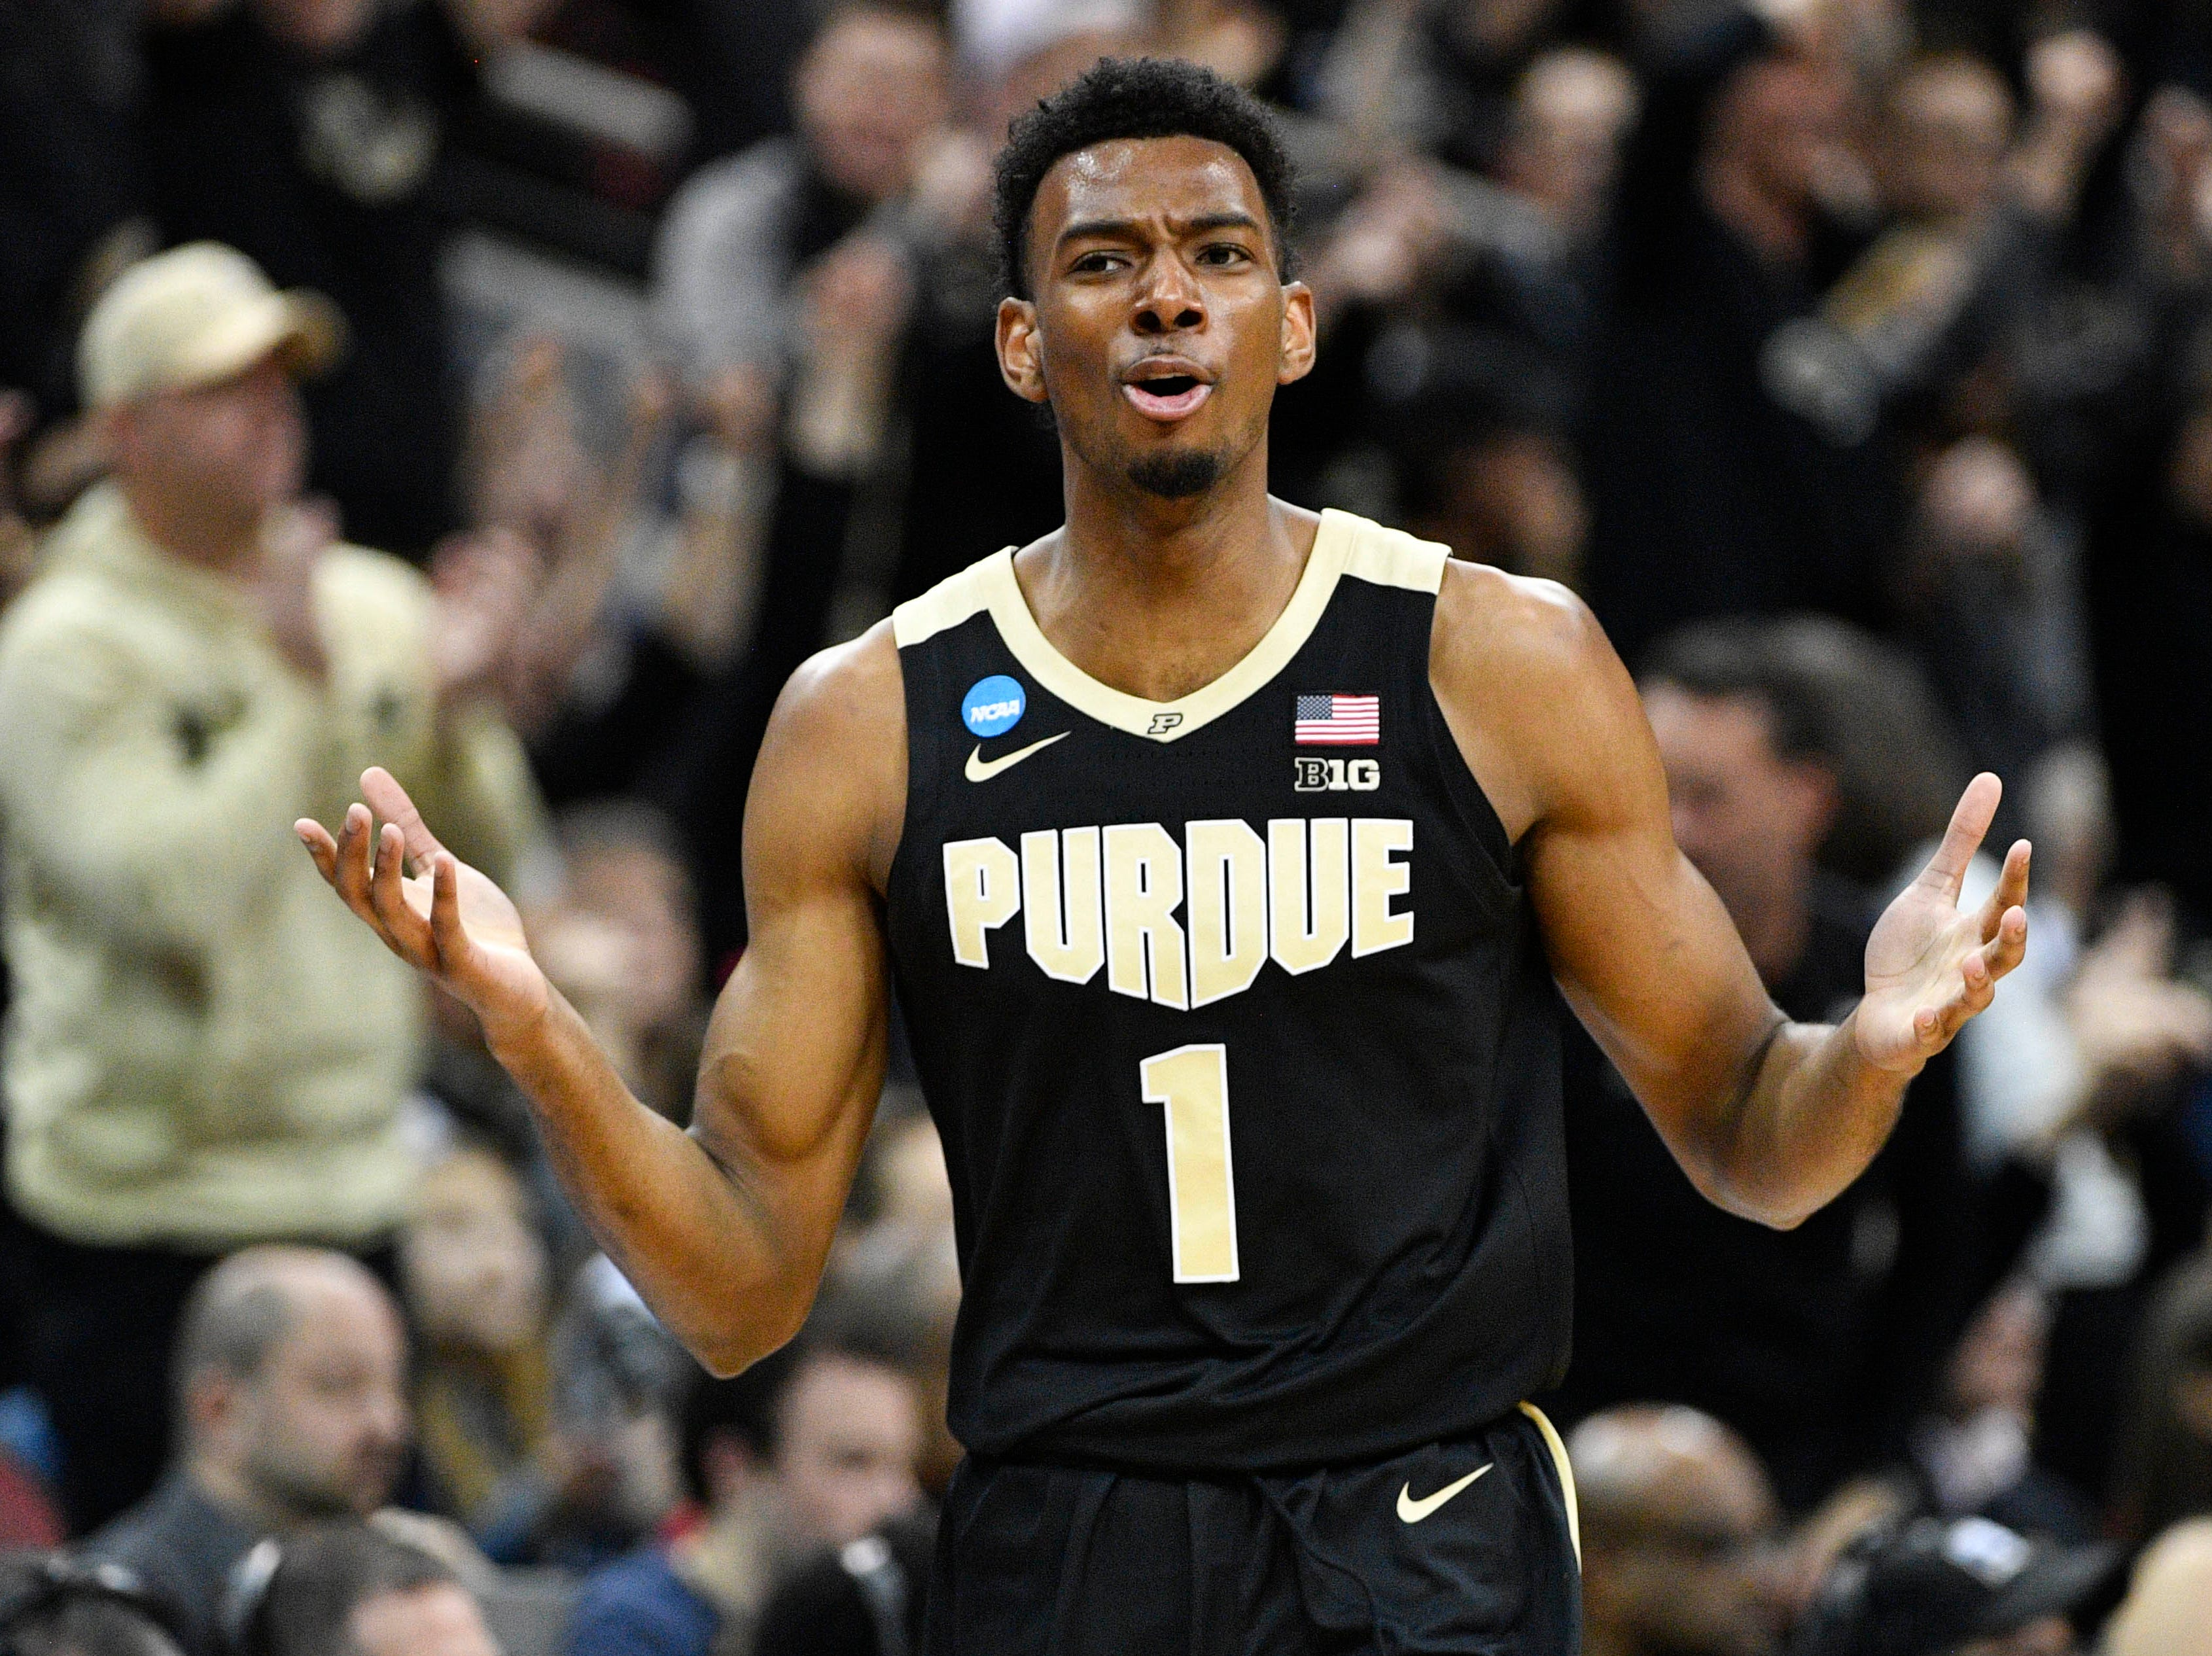 Mar 30, 2019; Louisville, KY, United States; Purdue Boilermakers forward Aaron Wheeler (1) reacts during the first half in the championship game against the Virginia Cavaliers of the south regional of the 2019 NCAA Tournament at KFC Yum Center. Mandatory Credit: Jamie Rhodes-USA TODAY Sports